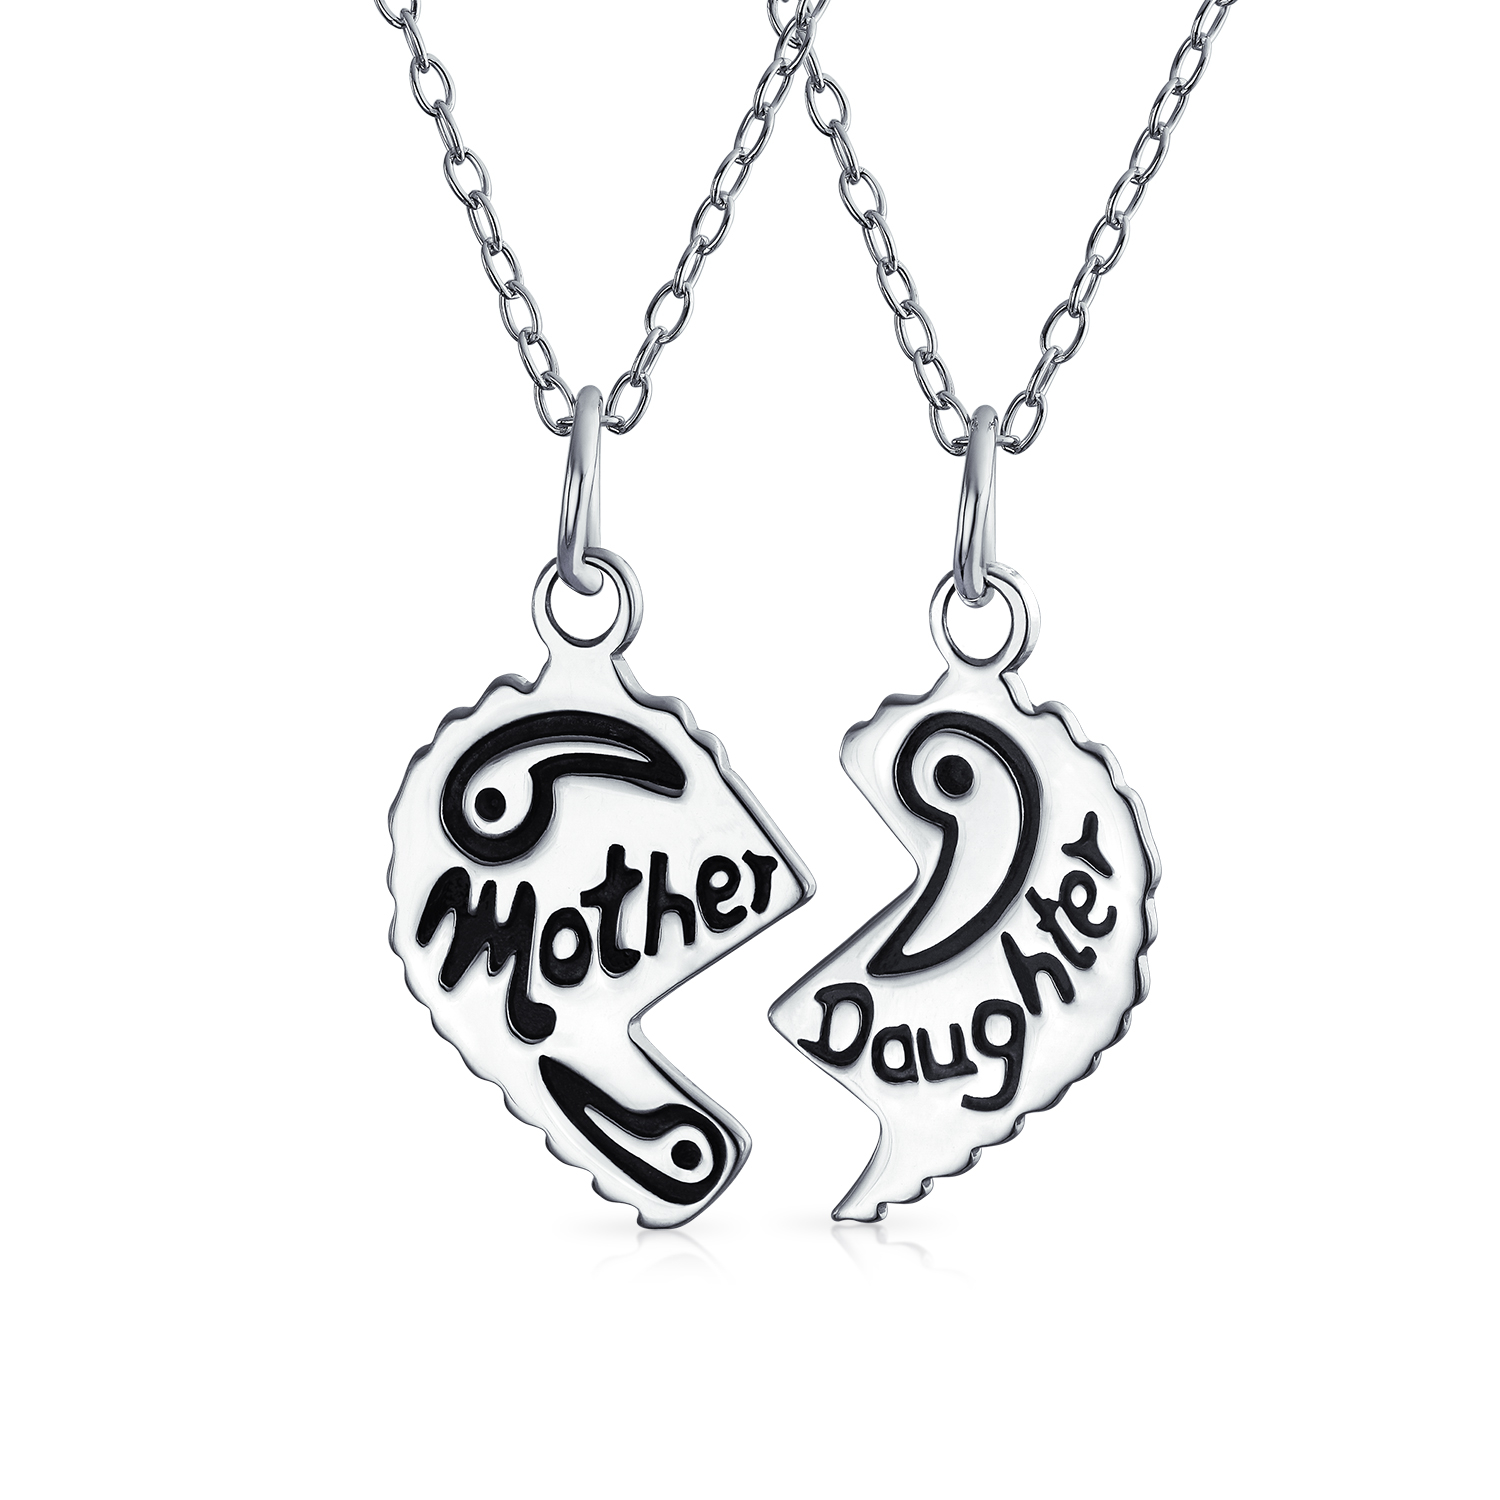 Etched Mother Daughter Heart Break Apart 2 PC Black